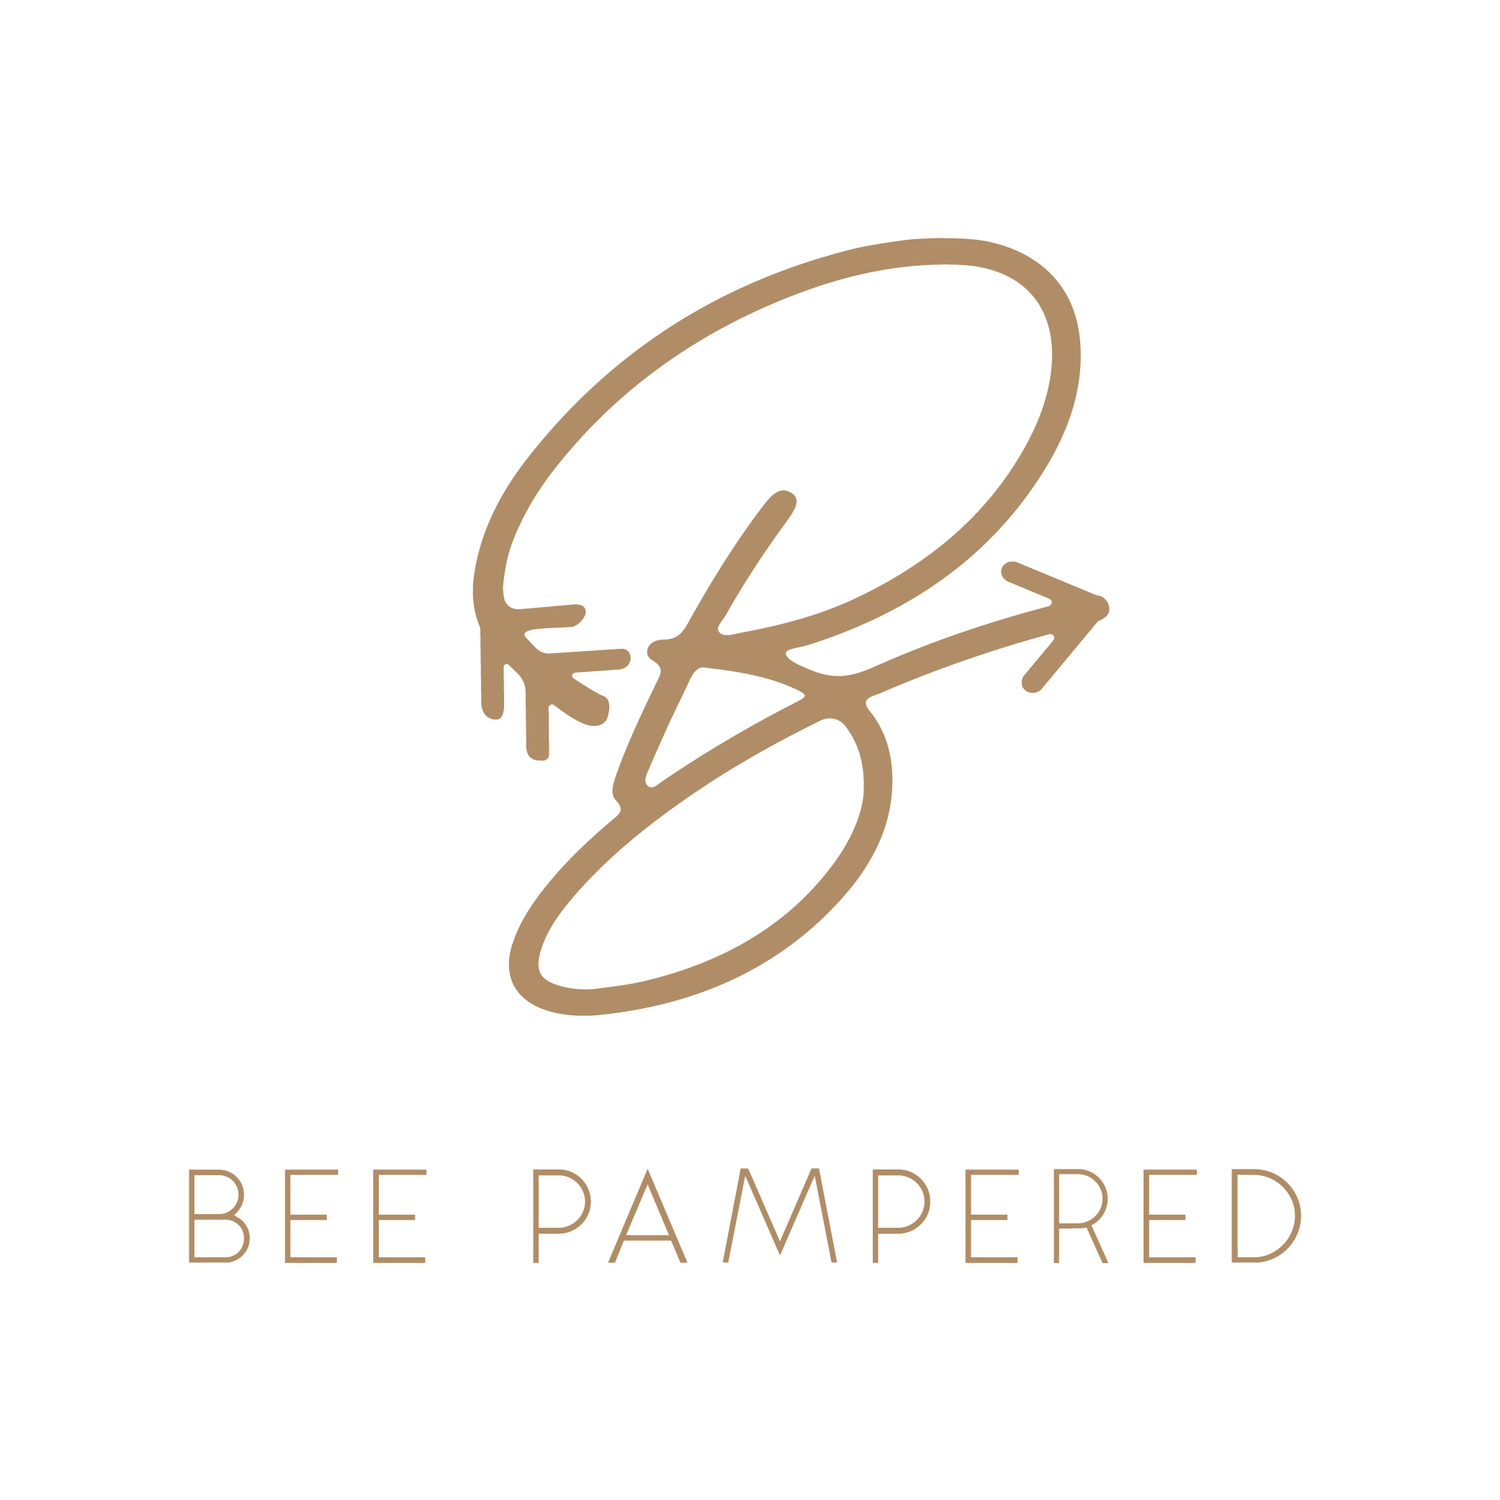 Bee Pampered Studio